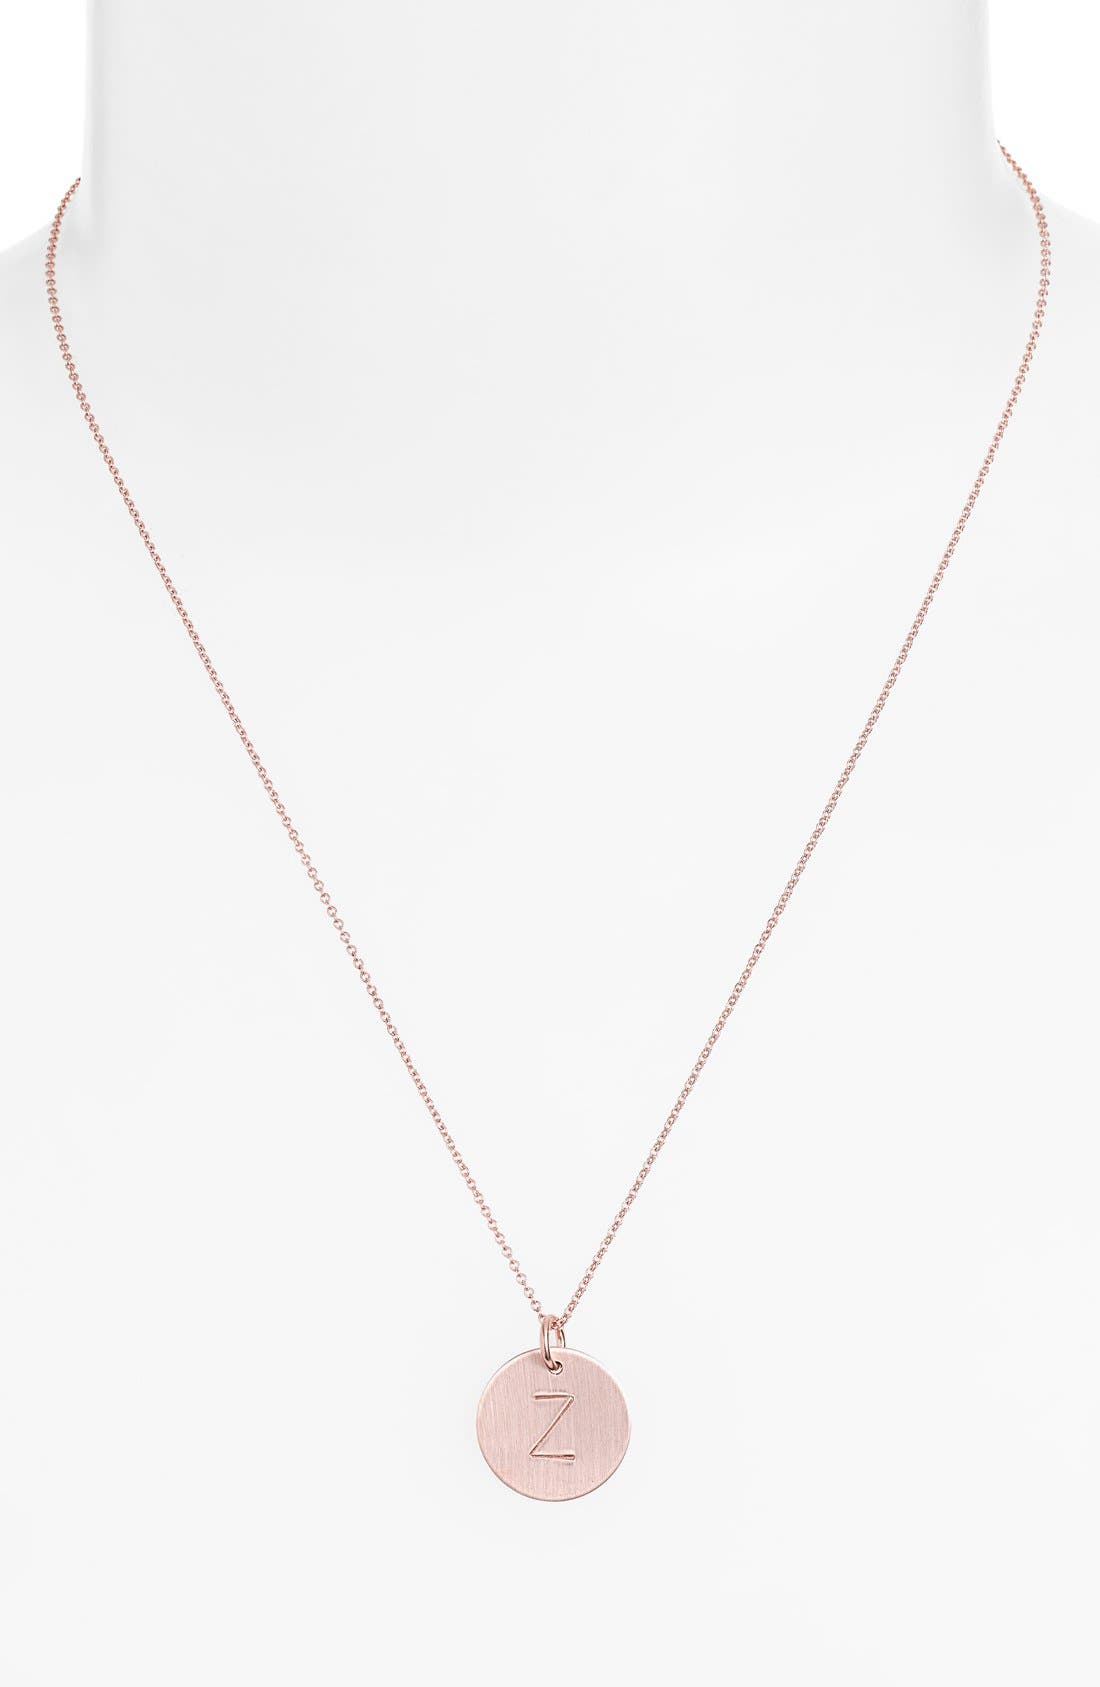 14k-Rose Gold Fill Initial Disc Necklace,                             Alternate thumbnail 52, color,